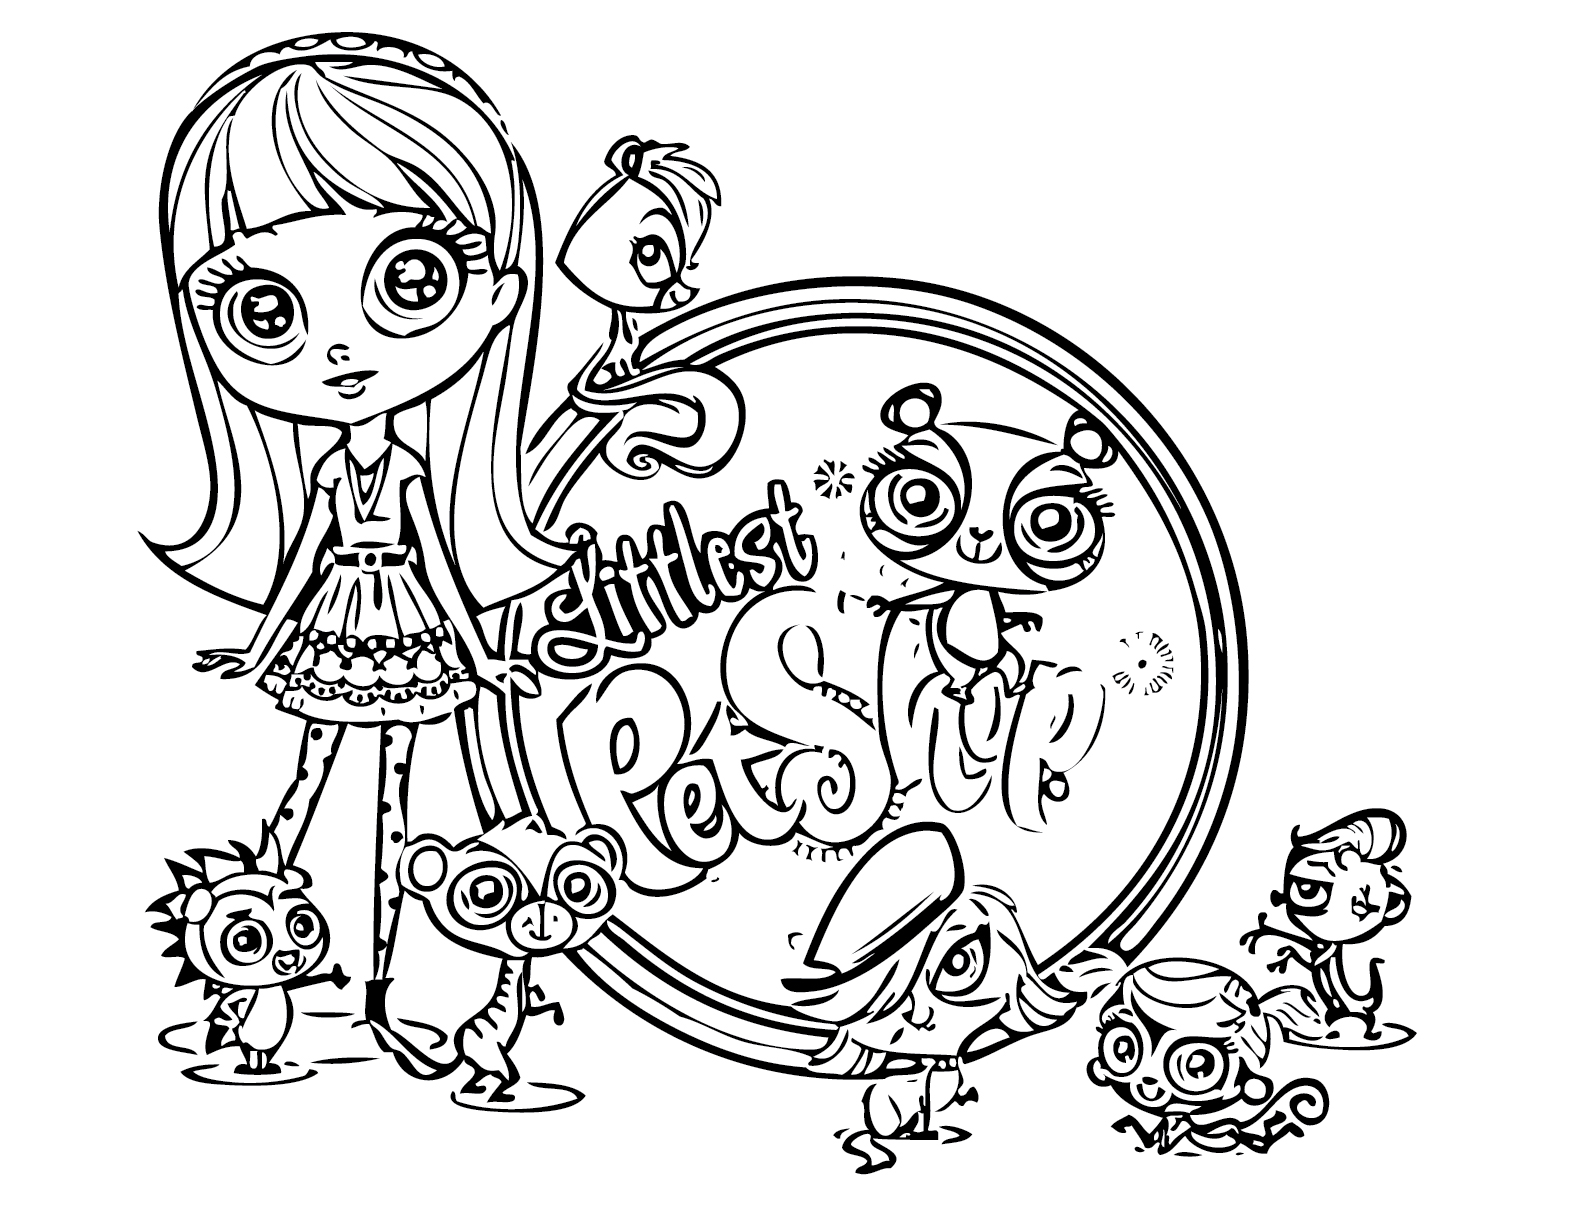 petshop coloring pages com - photo#35